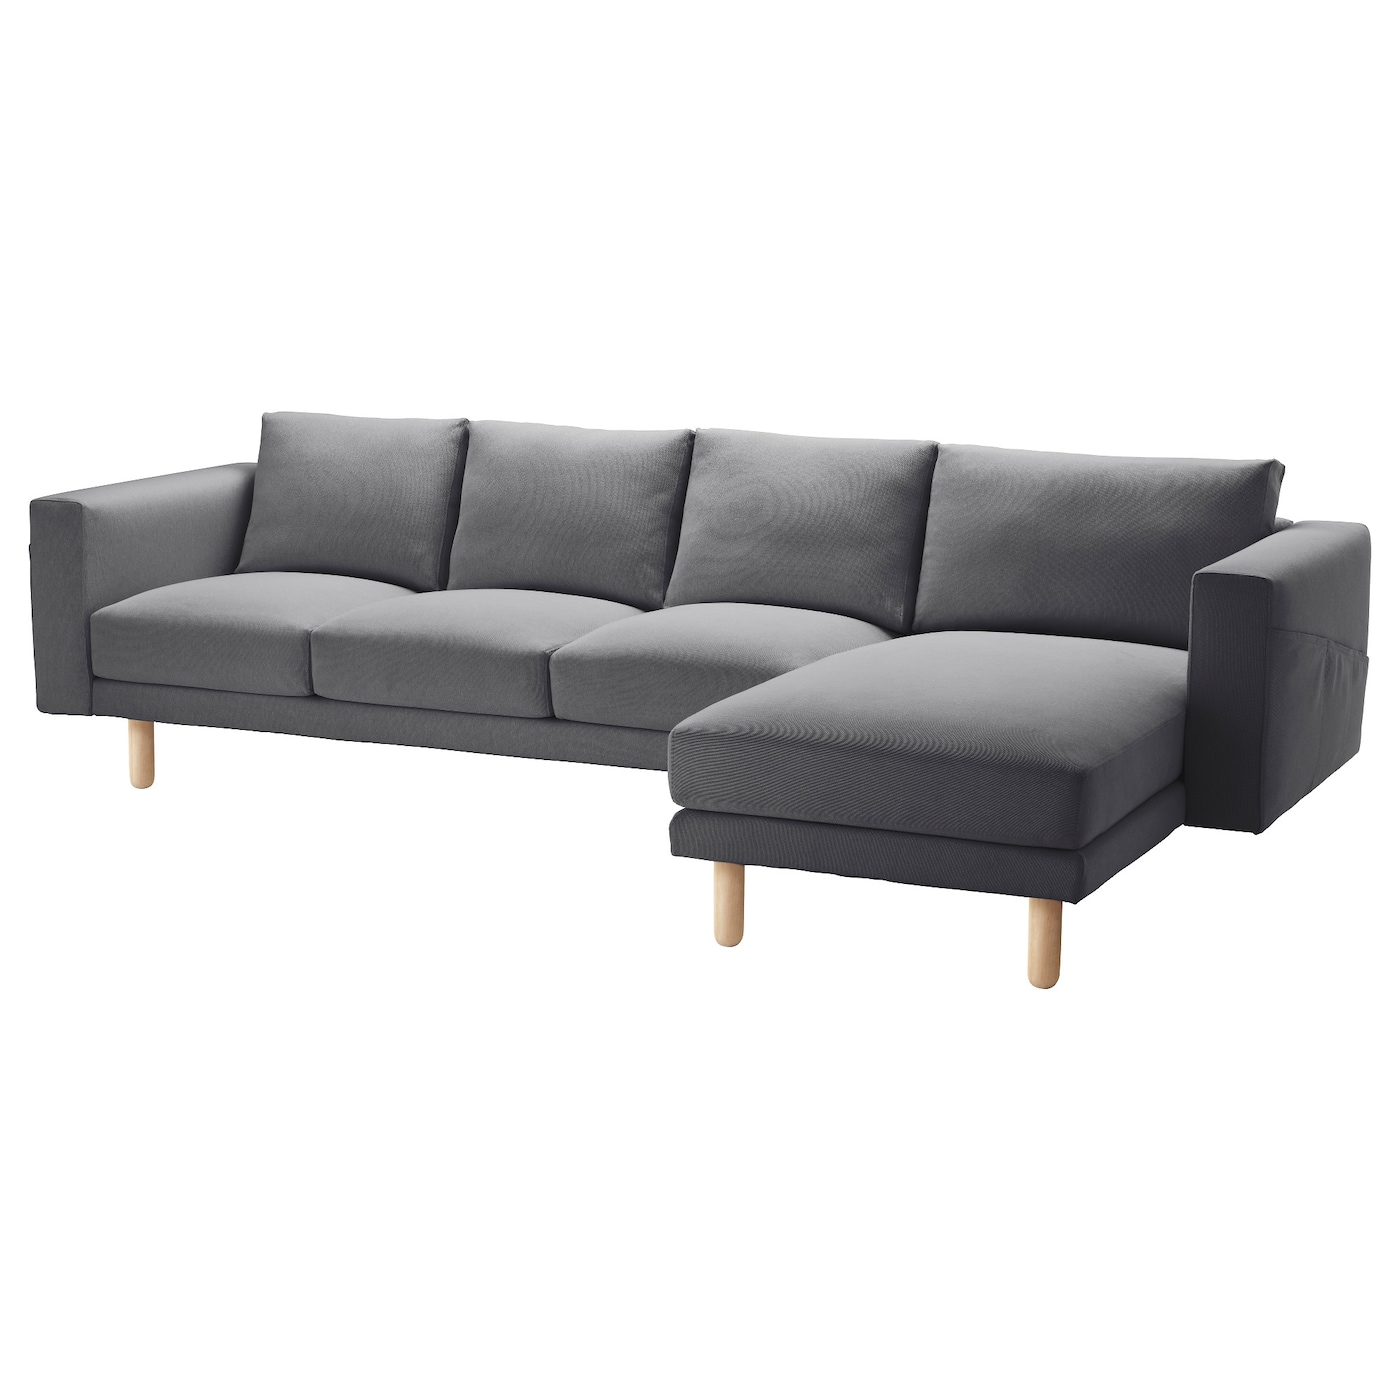 Norsborg cover 3 seat sofa w chaise longue finnsta dark for Chaise longue ikea